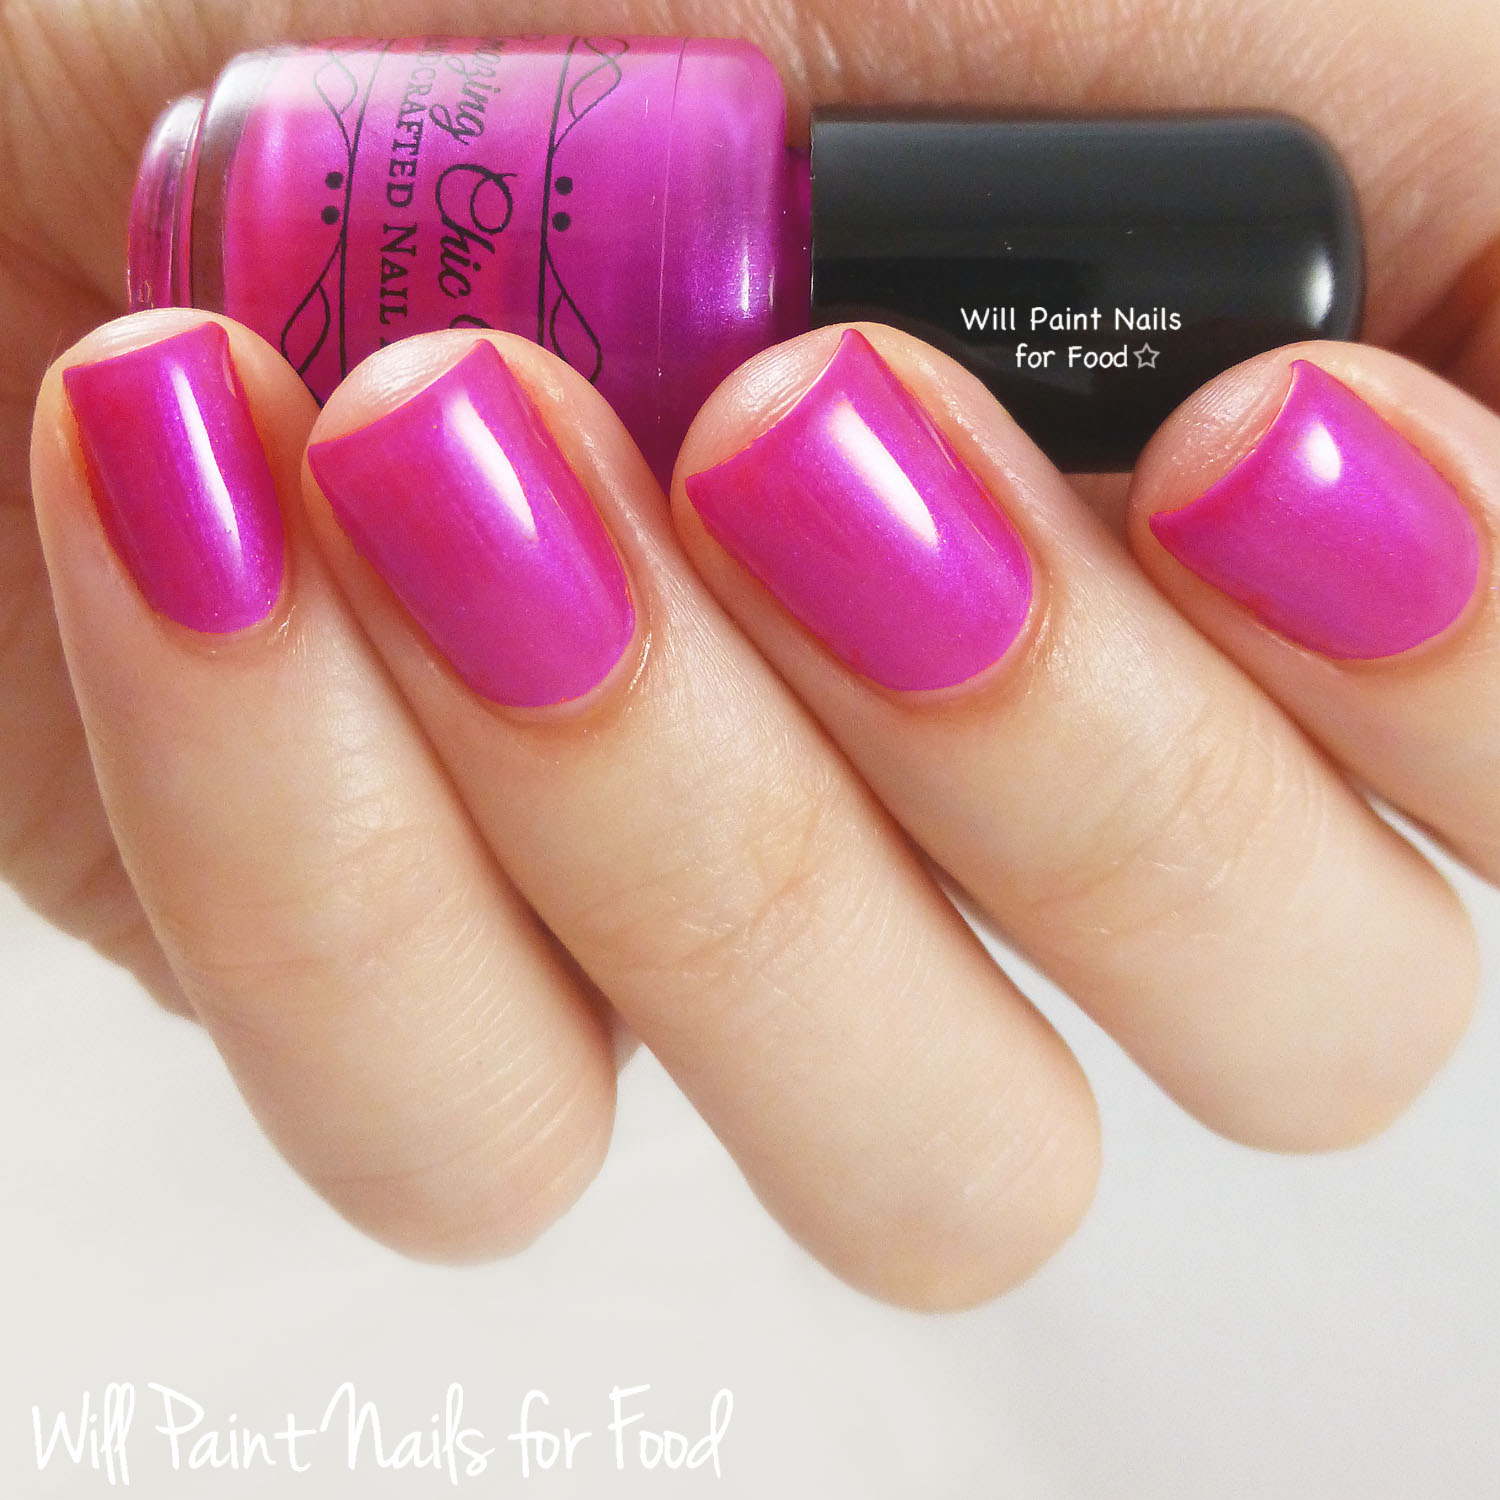 Amazing Chic Nails Festival Season swatch